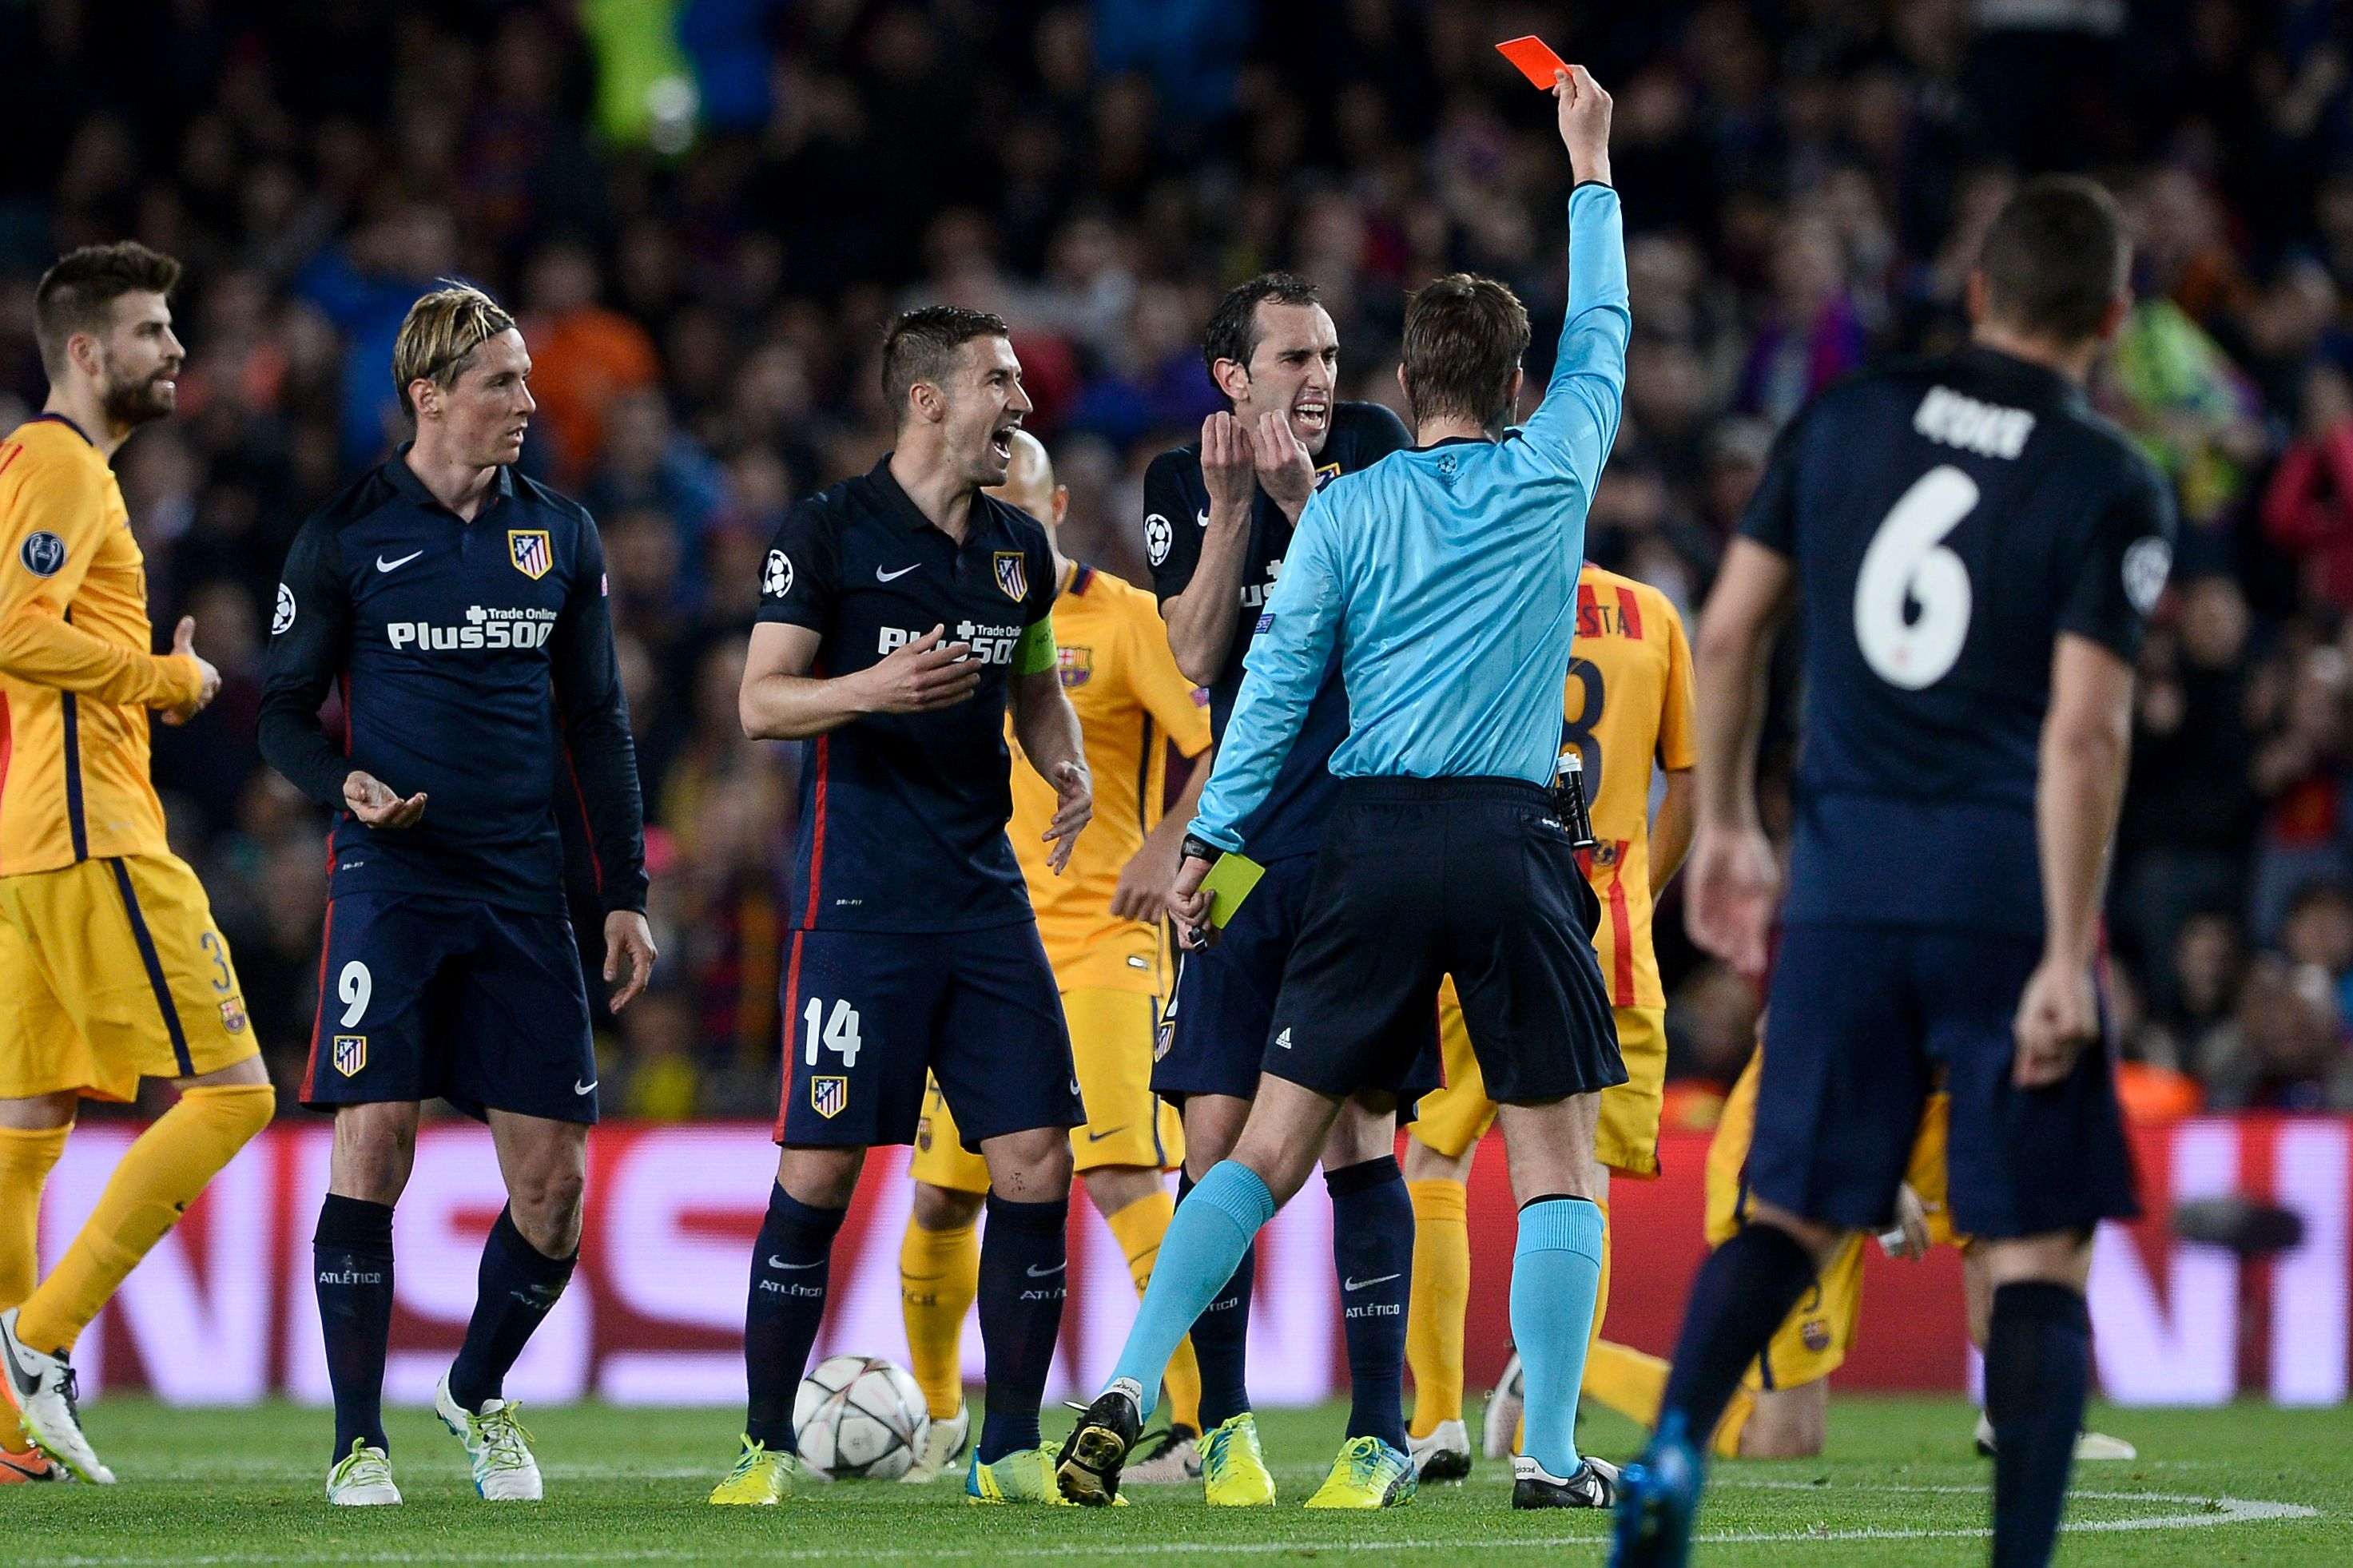 Barcelona Vs Atletico Madrid Score Reaction From 2016 Champions League Leg 1 Bleacher Report Latest News Videos And Highlights